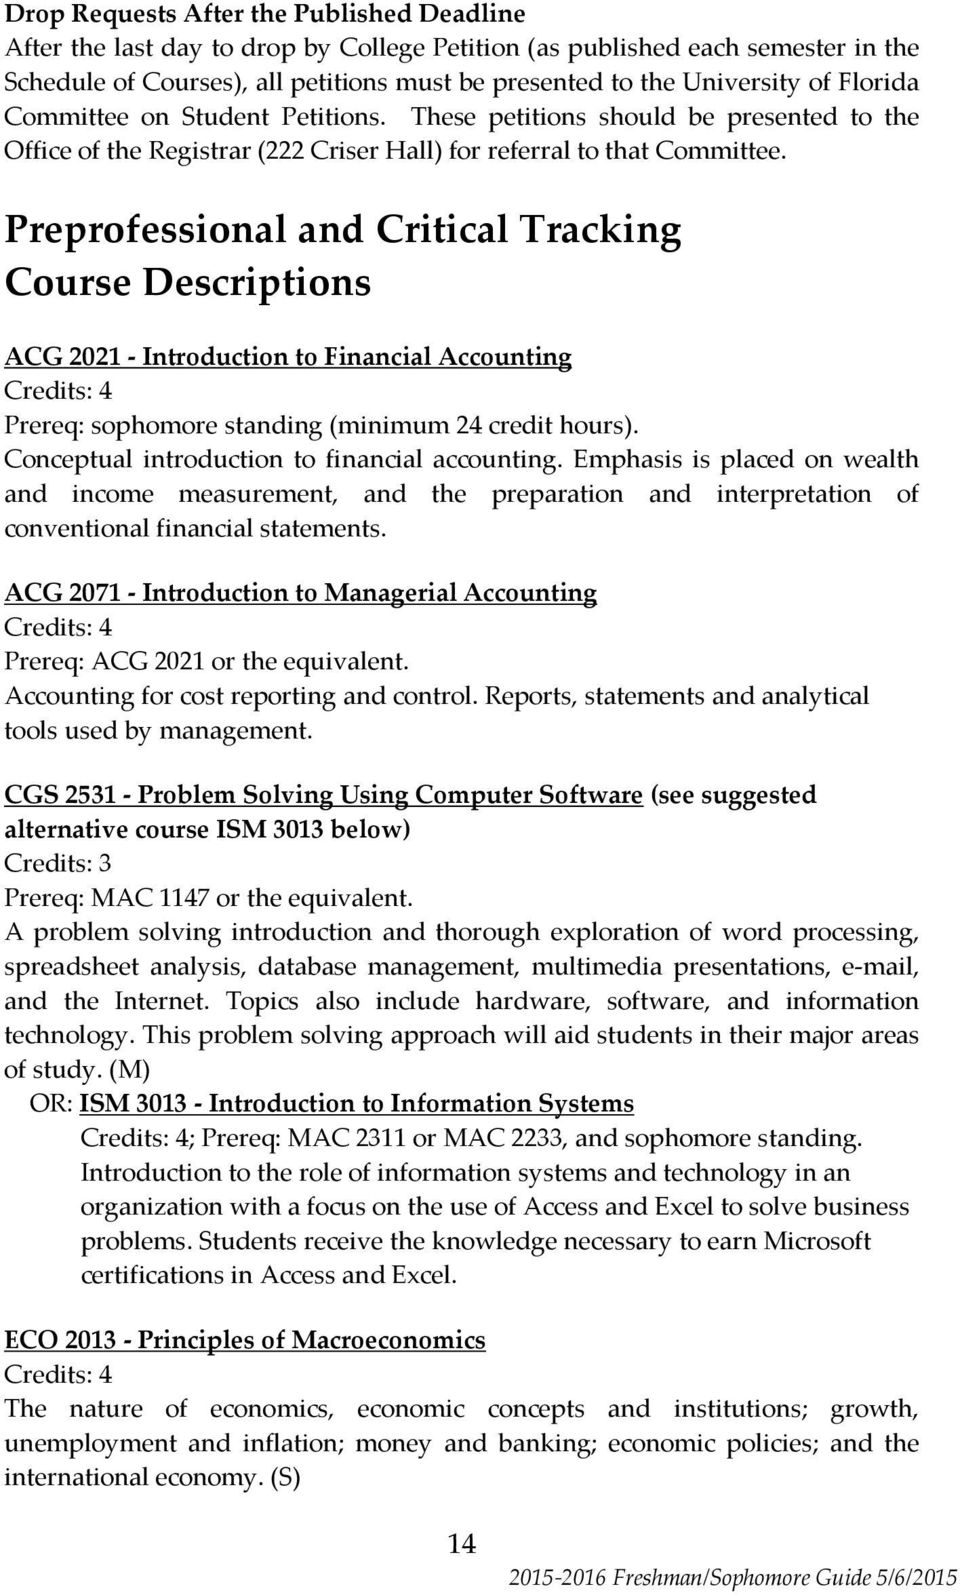 Preprofessional and Critical Tracking Course Descriptions ACG 2021 - Introduction to Financial Accounting Credits: 4 Prereq: sophomore standing (minimum 24 credit hours).